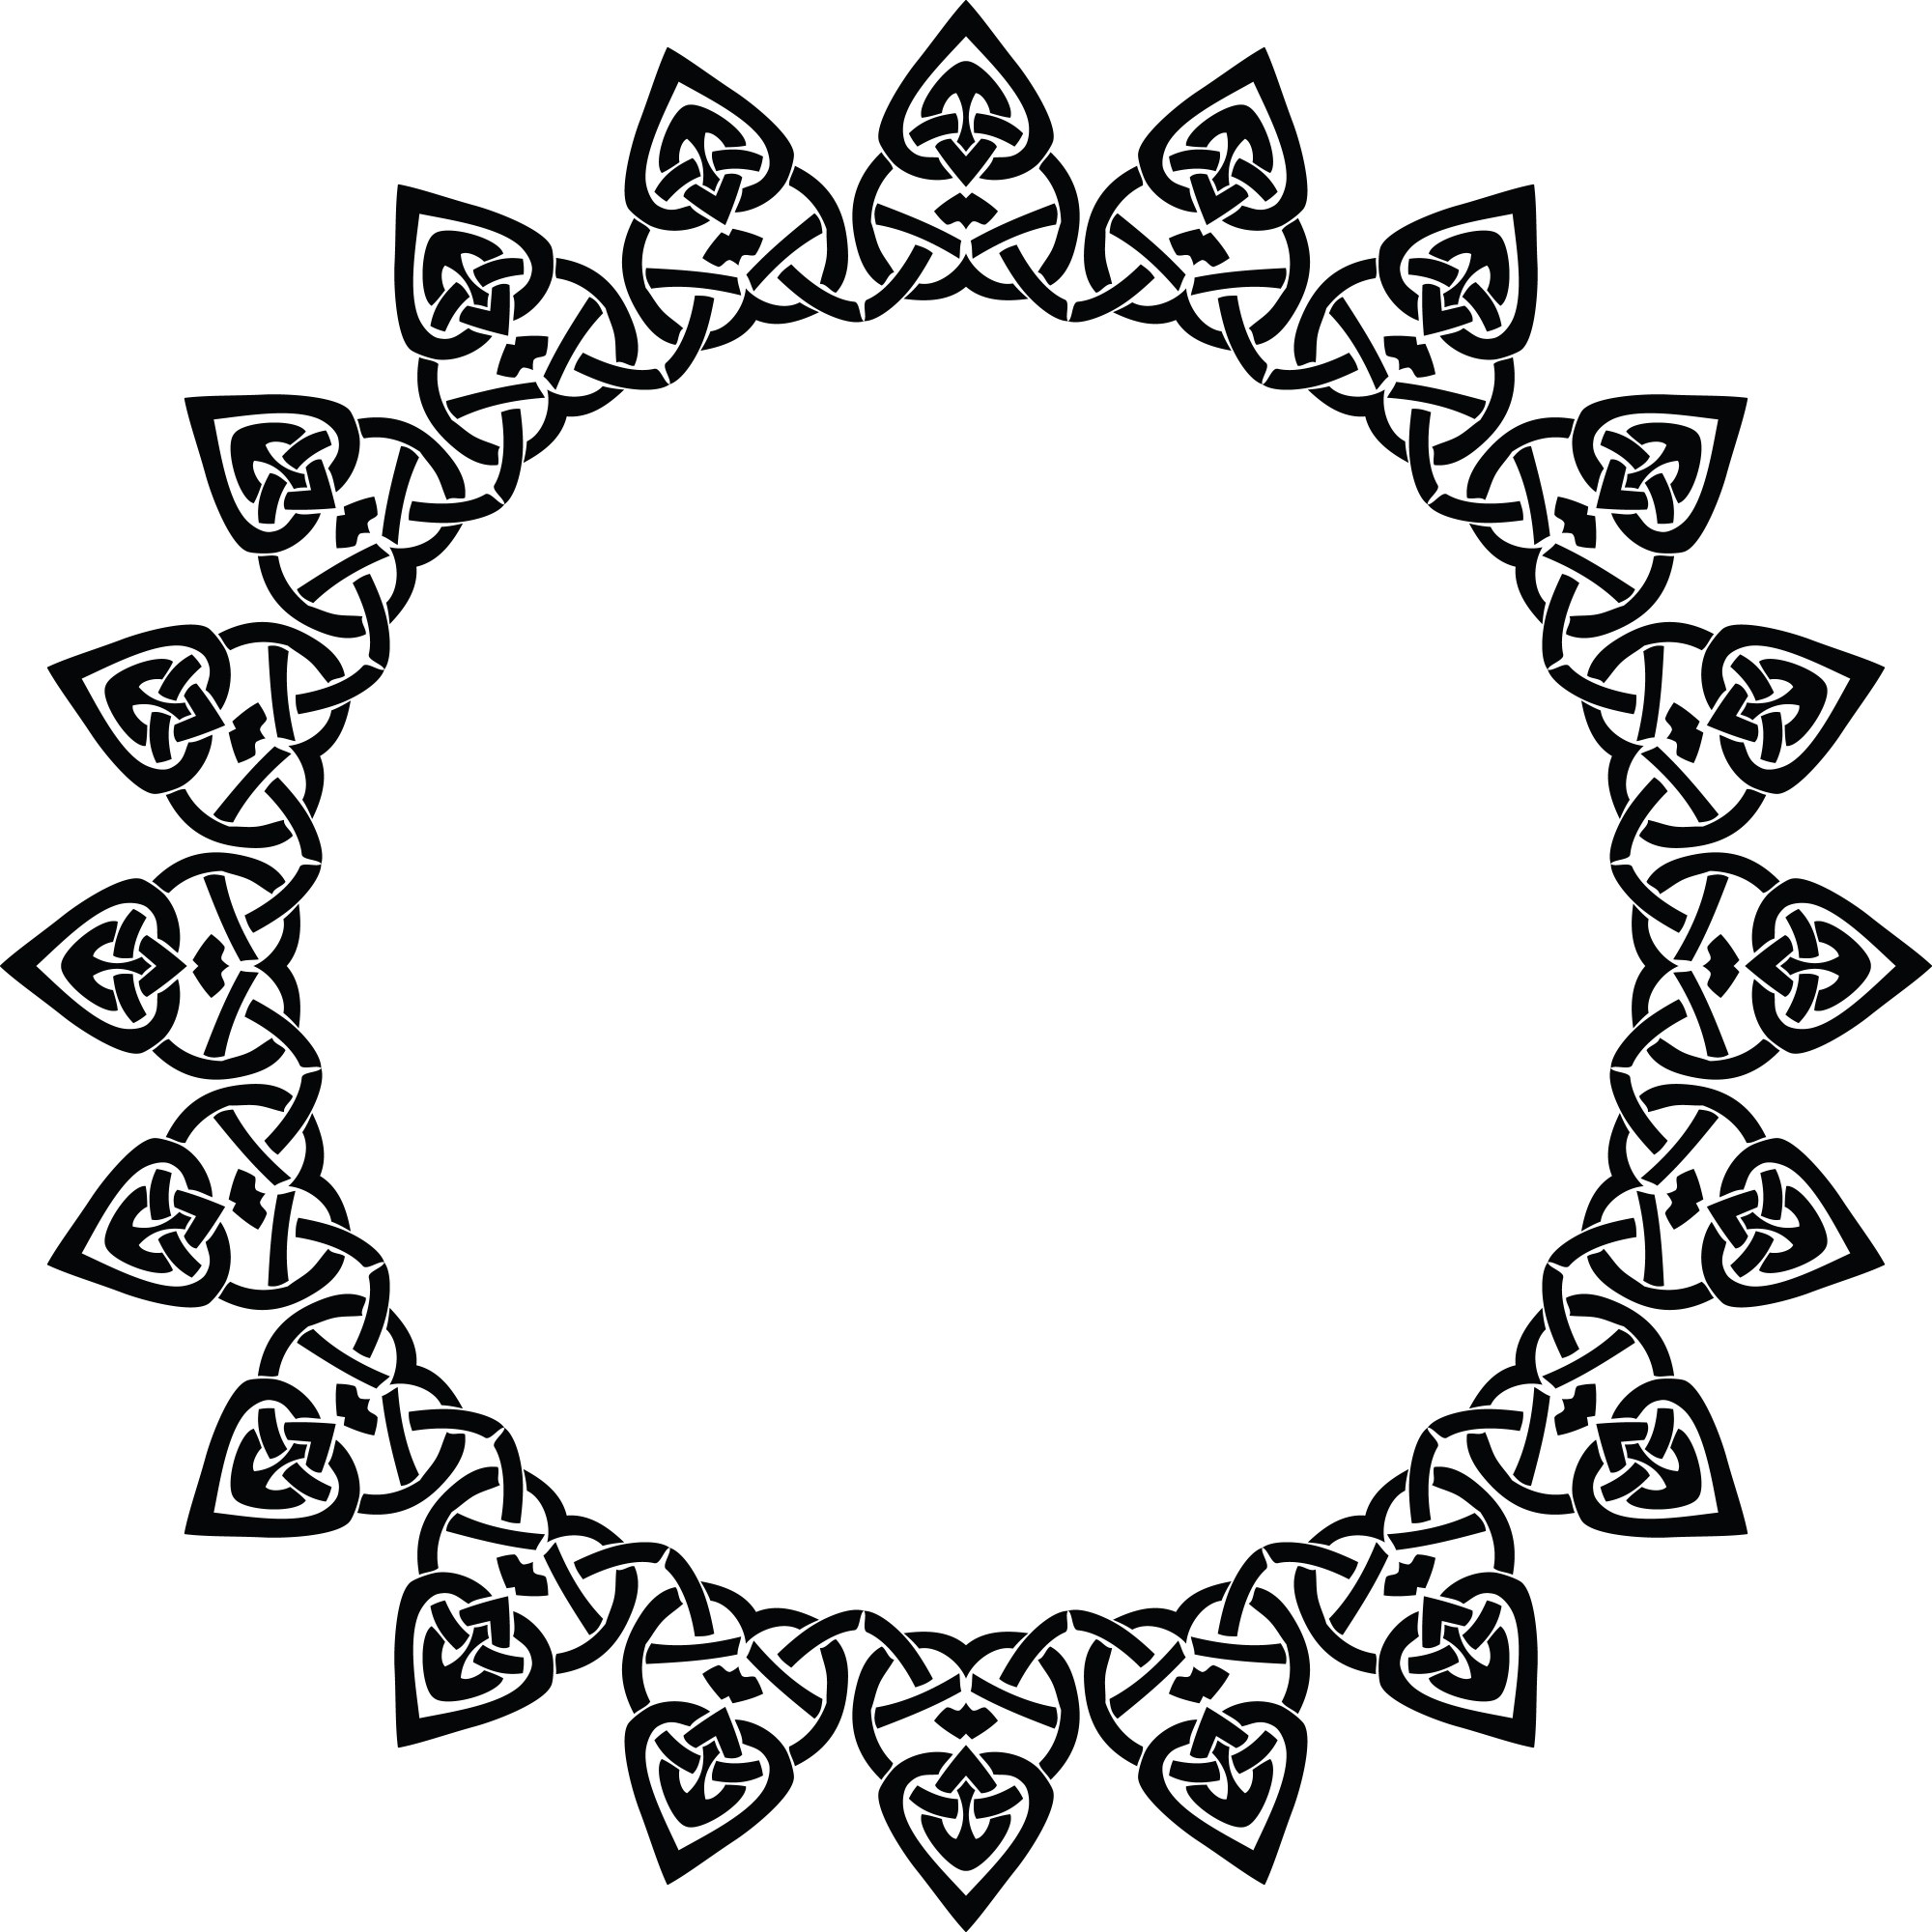 hight resolution of free clipart of a celtic round frame border design element in black and white knots